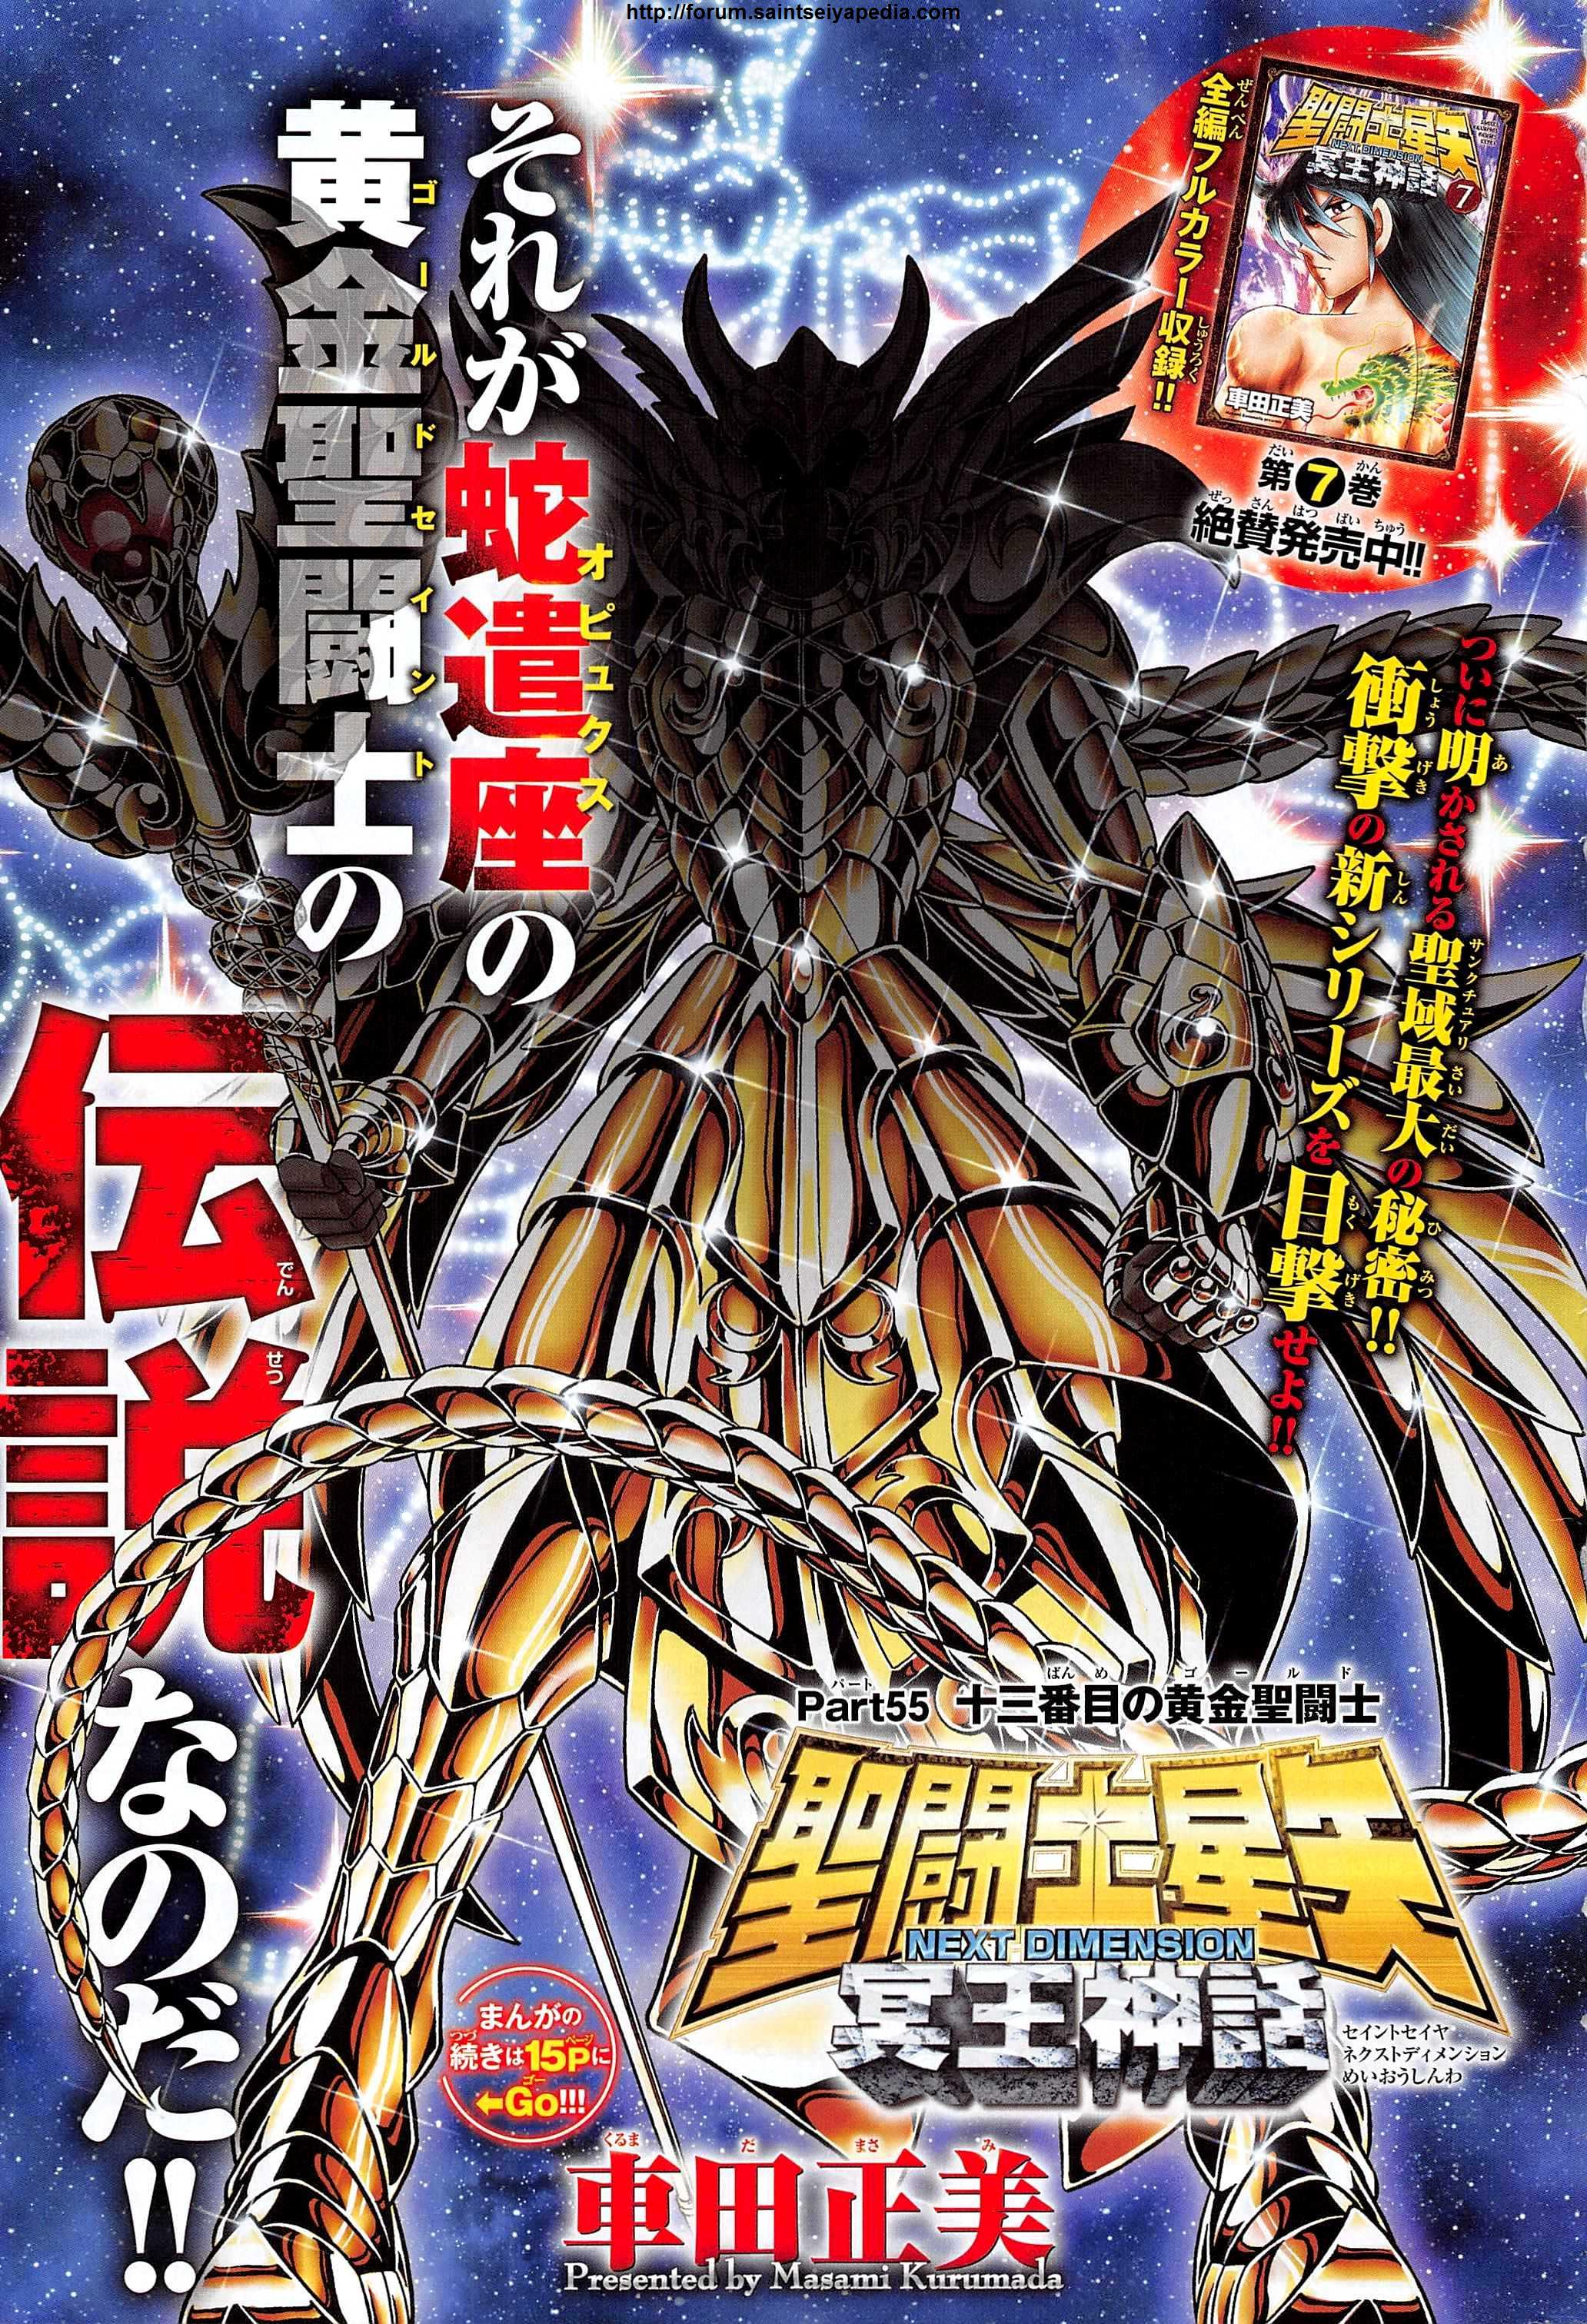 Saint Seiya - The Next Dimension - Chapitre 55 - 04